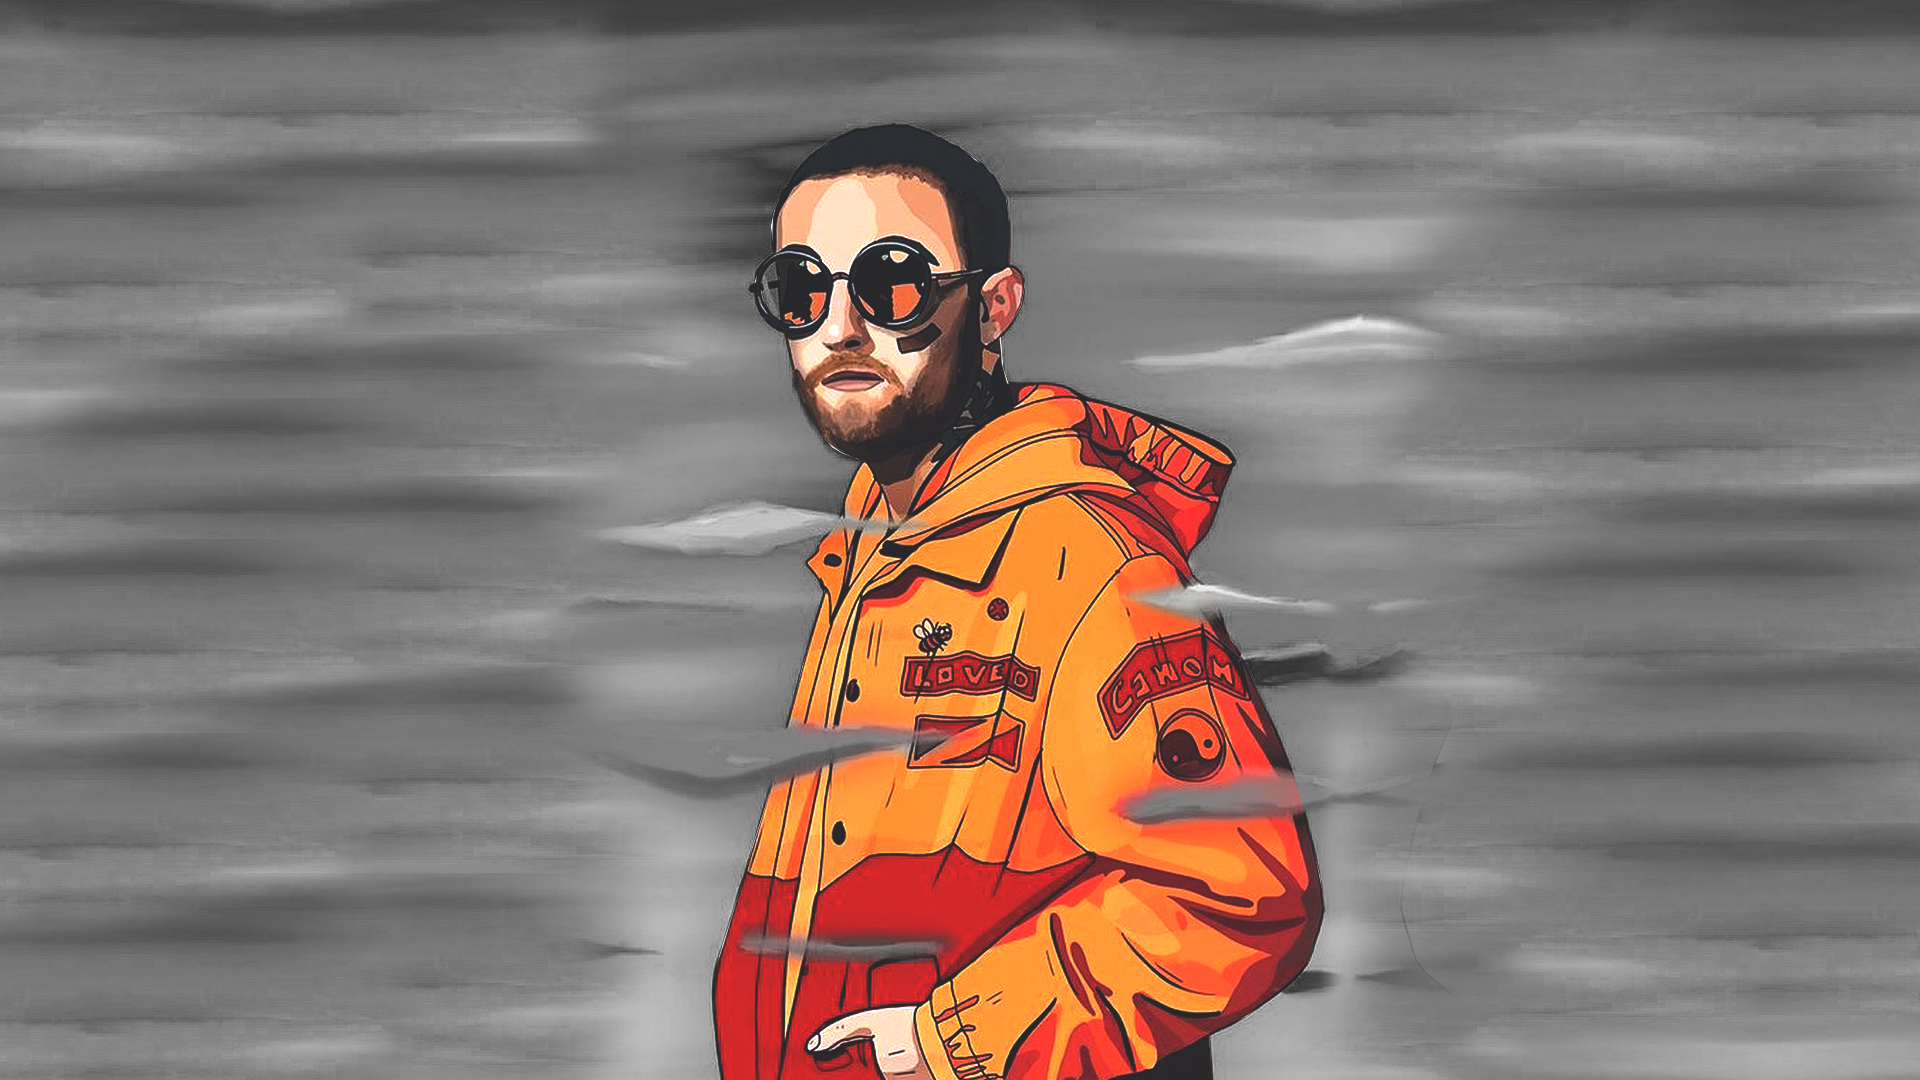 Mac Miller Pc Wallpaper Mac Miller Hd Wallpaper Rip